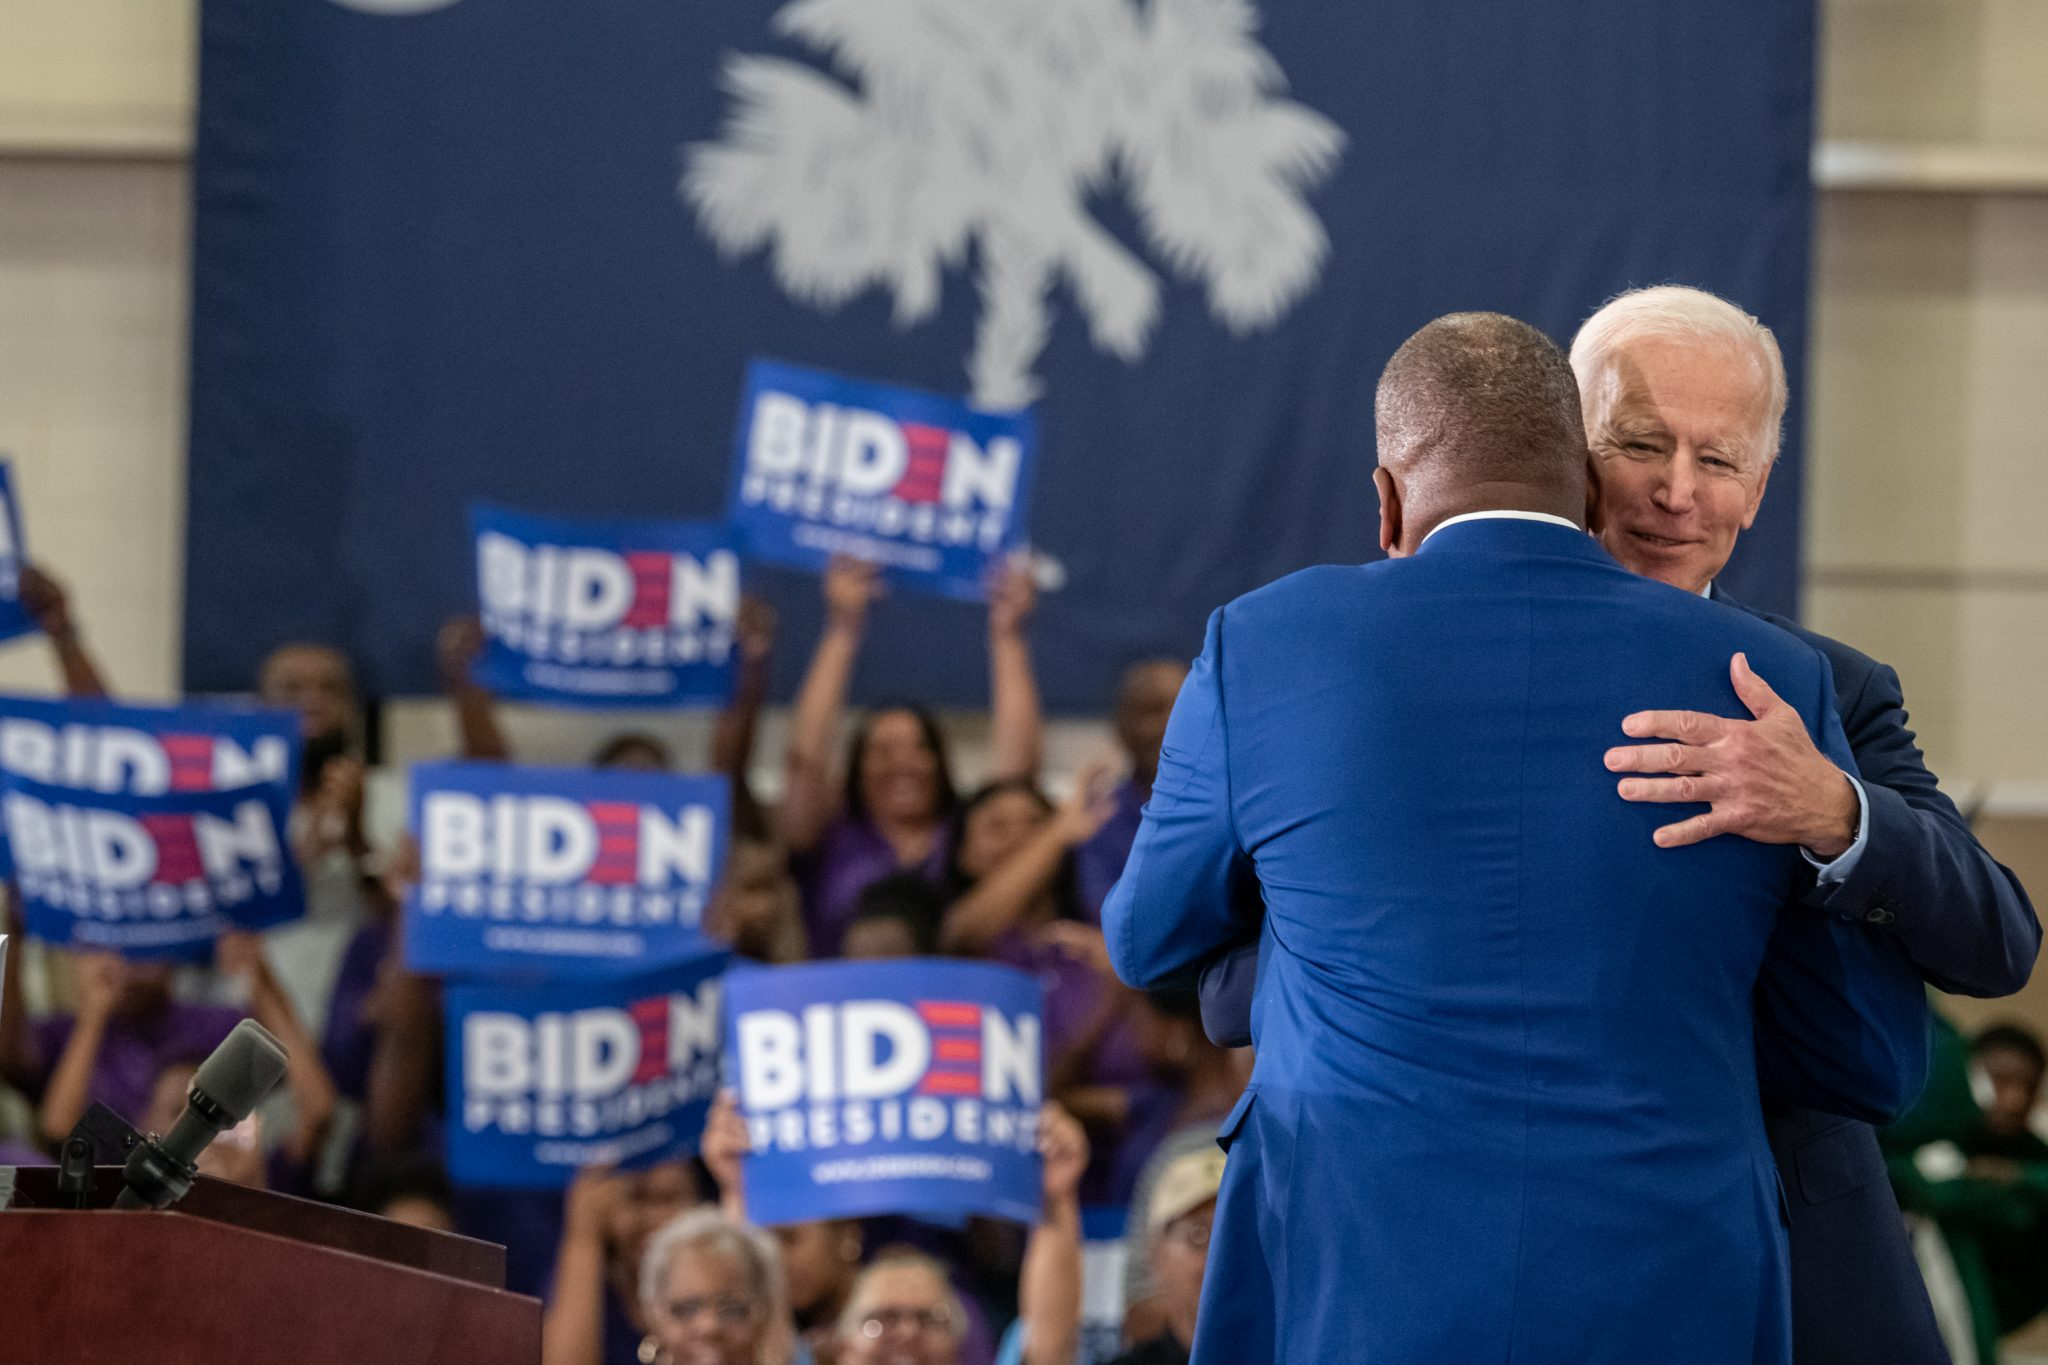 Joe Biden in Columbia, SC, on May 4, 2019, illustrating piece on Black and Hispanic vote (Crush Rush/Shutterstock.com) spectator.org